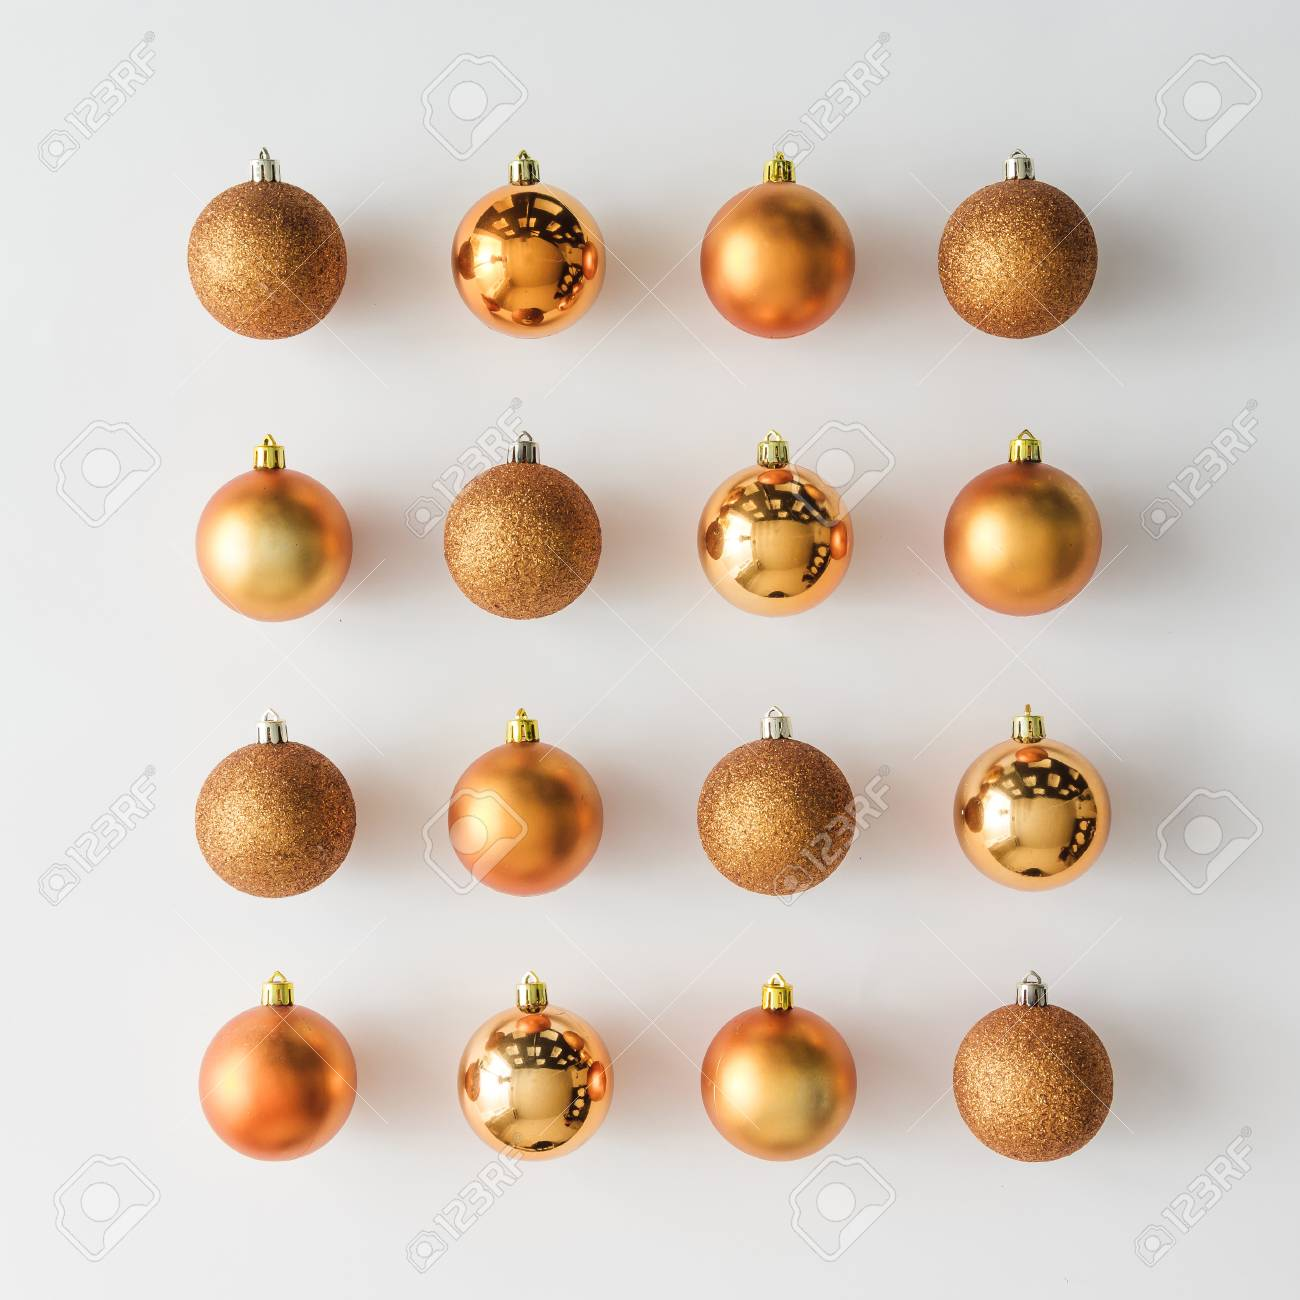 Golden Christmas baubles decoration on bright background. Flat lay. Holiday concept. - 89543785